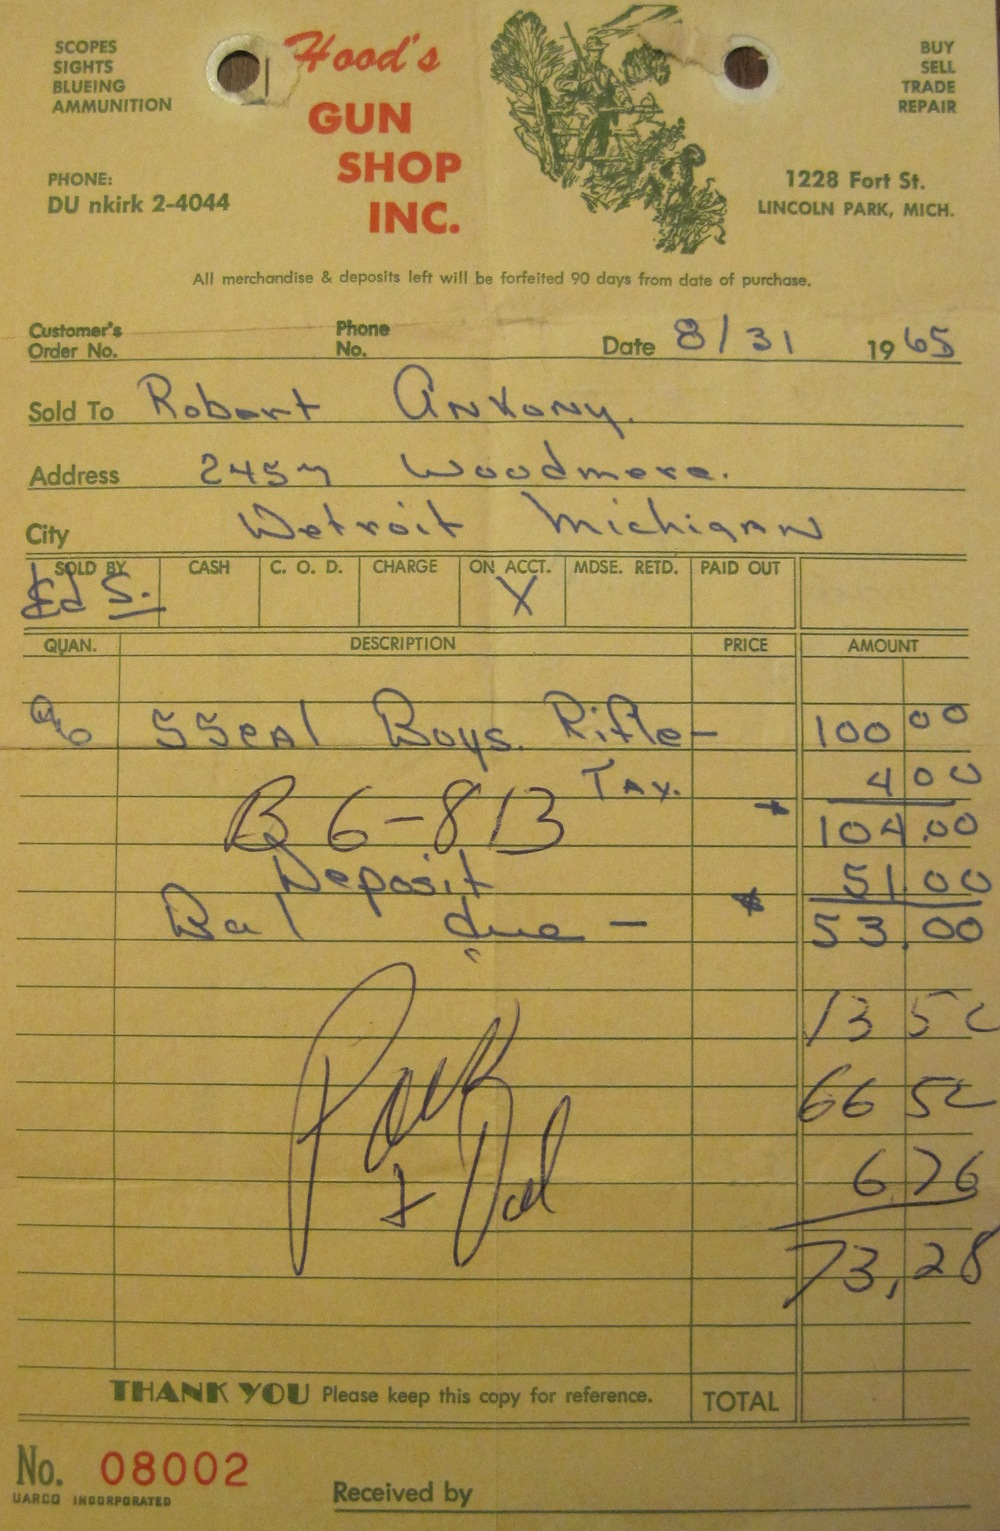 Tuesday, August 31, 1965, my bazooka receipt